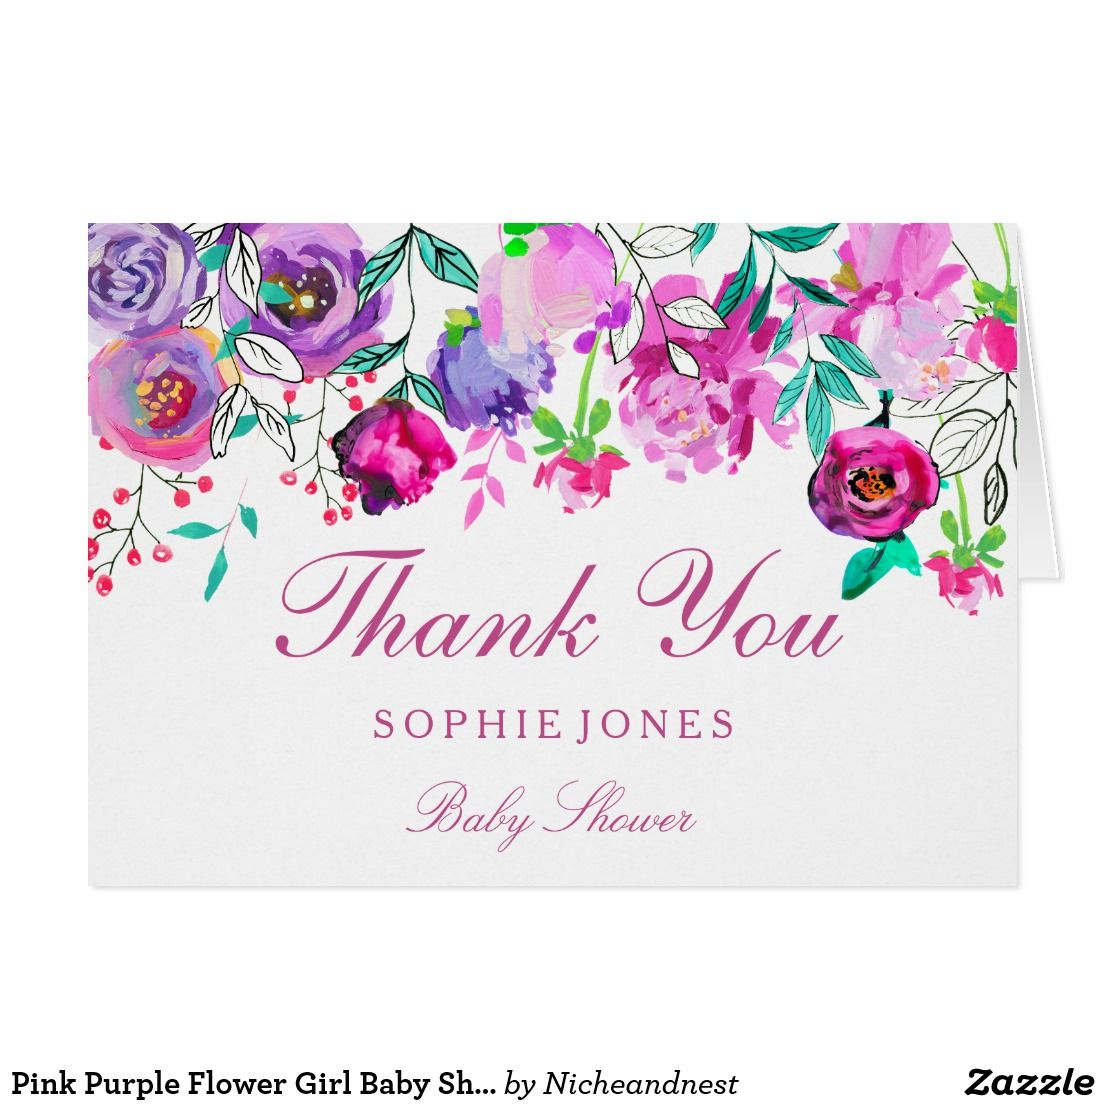 Pink Purple Flower Girl Baby Shower Thank You Card | Baby Shower ...